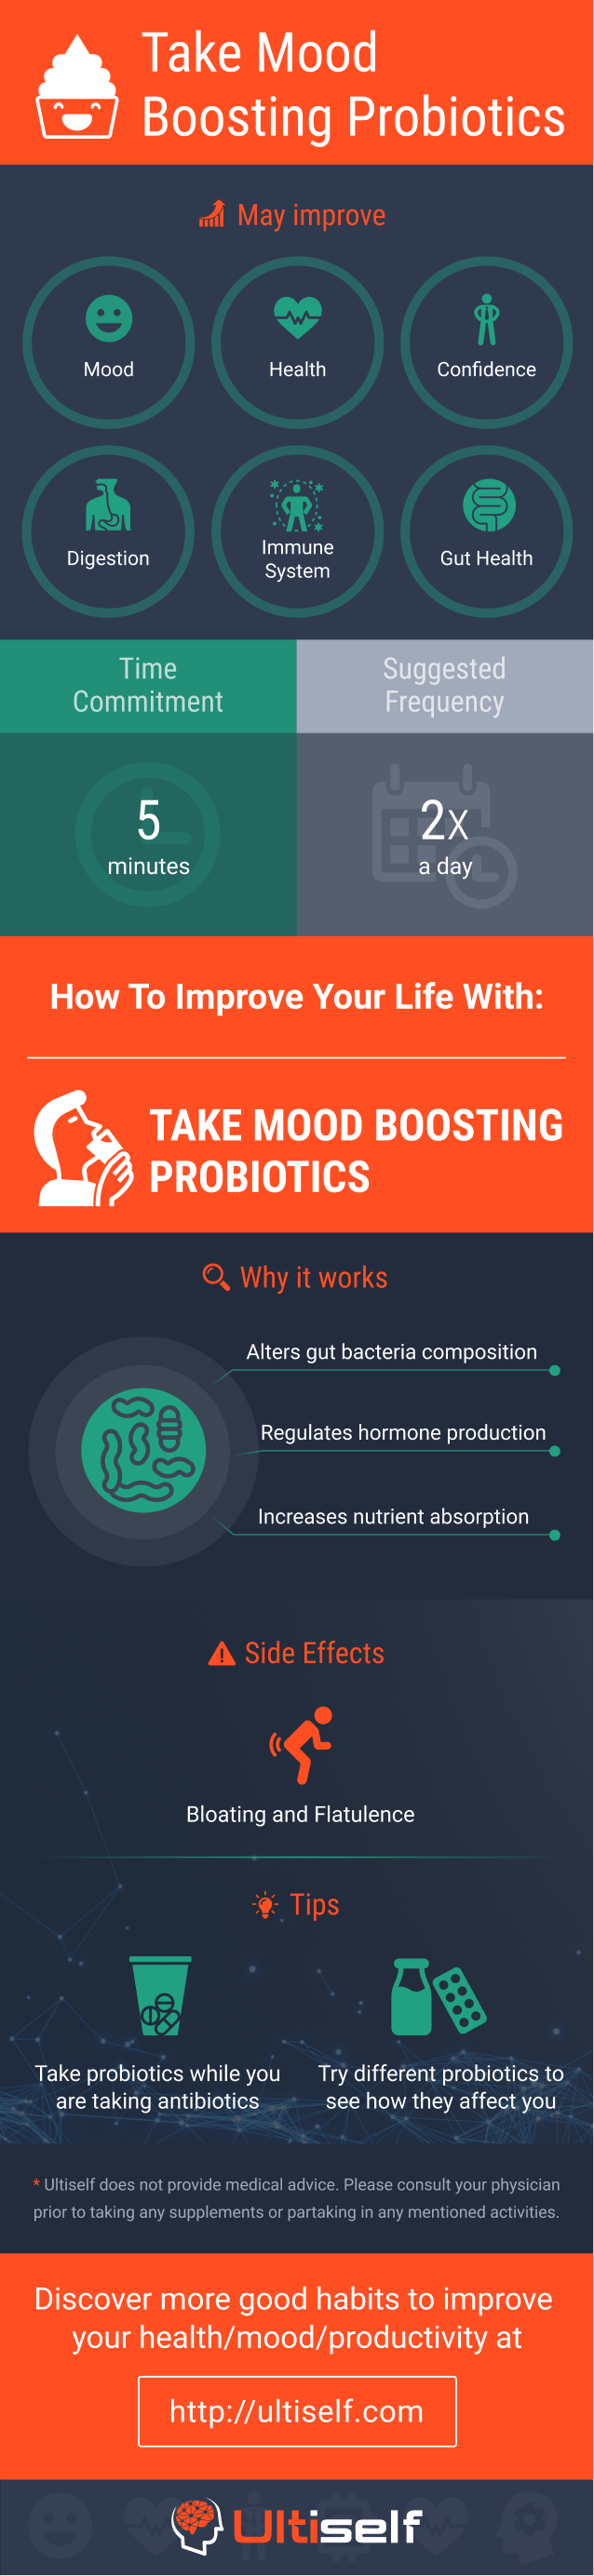 Take mood boosting Probiotics infographic